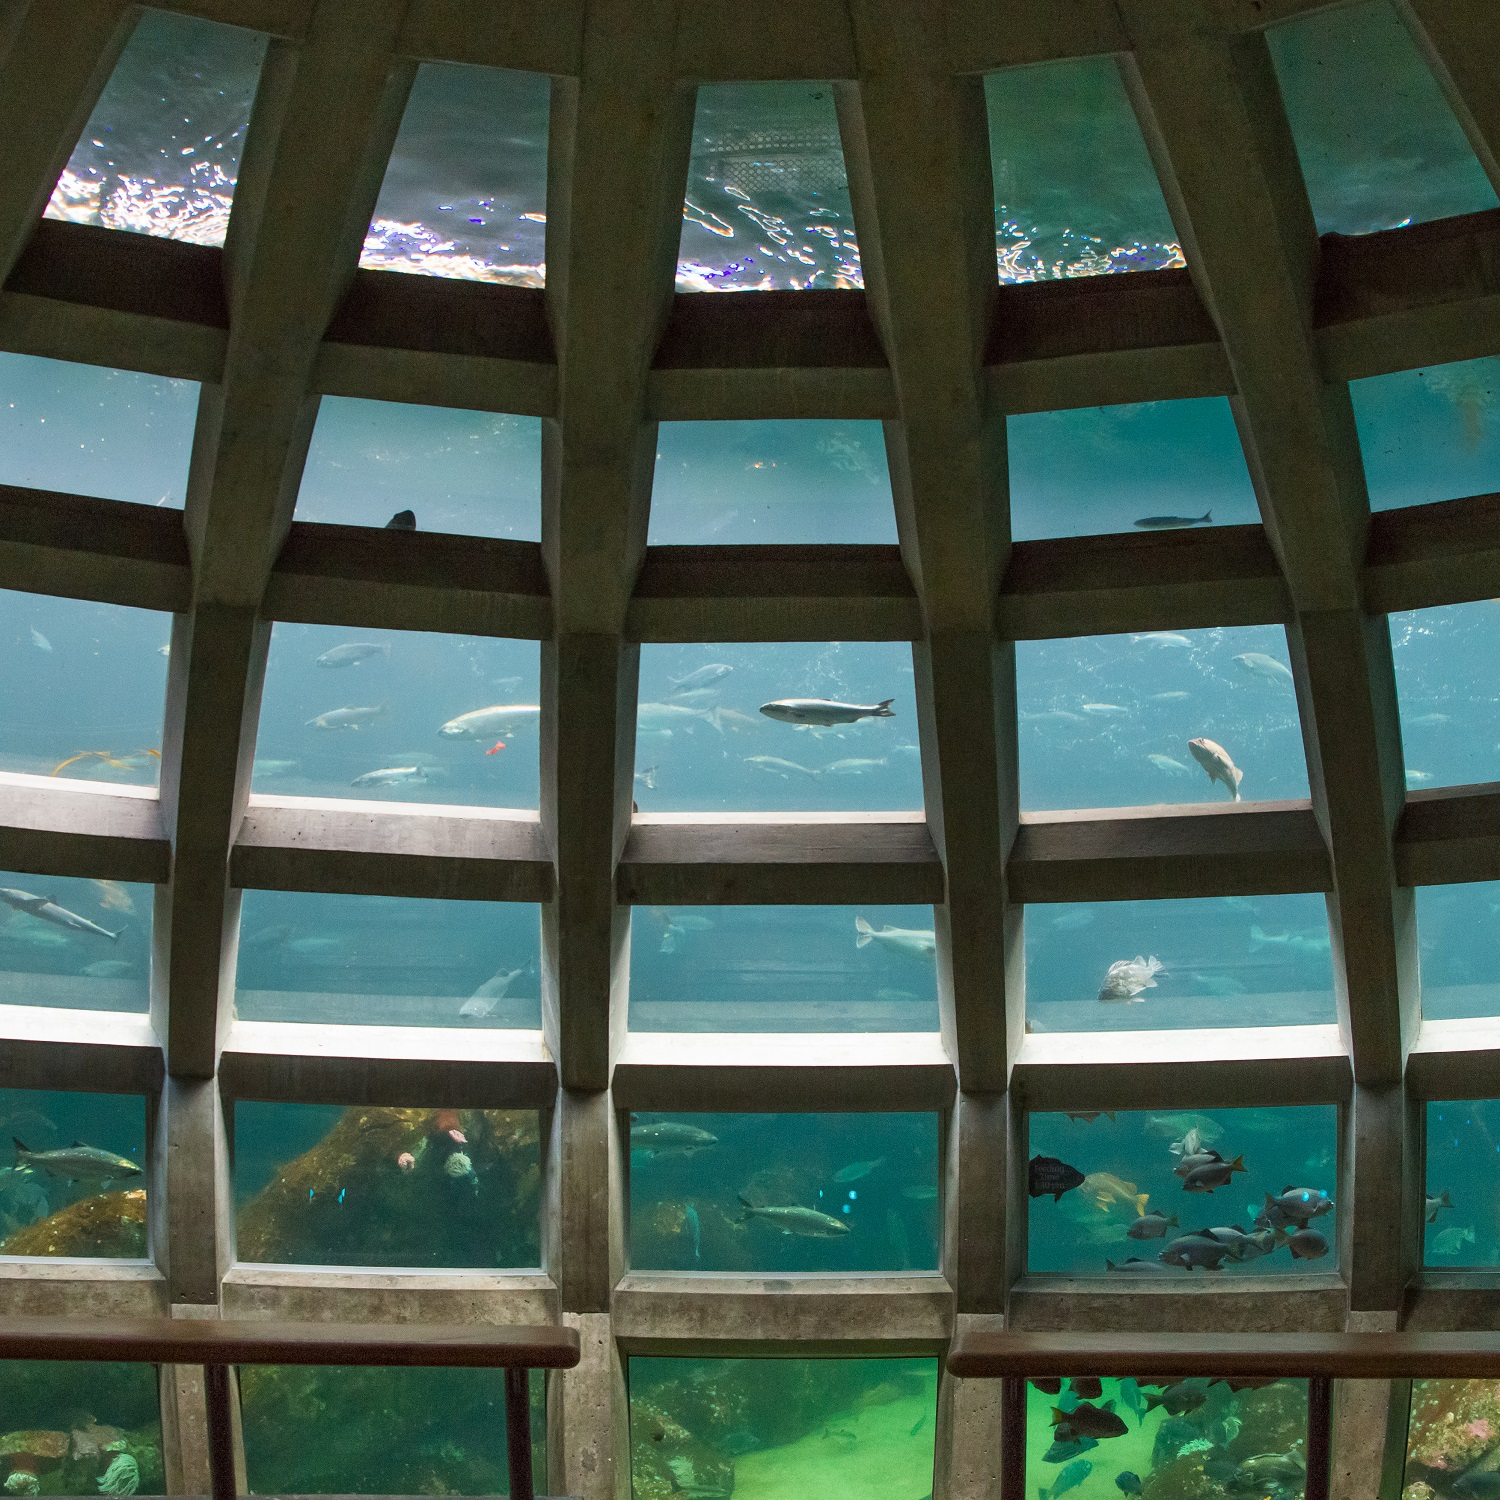 Underwater dome exhibit